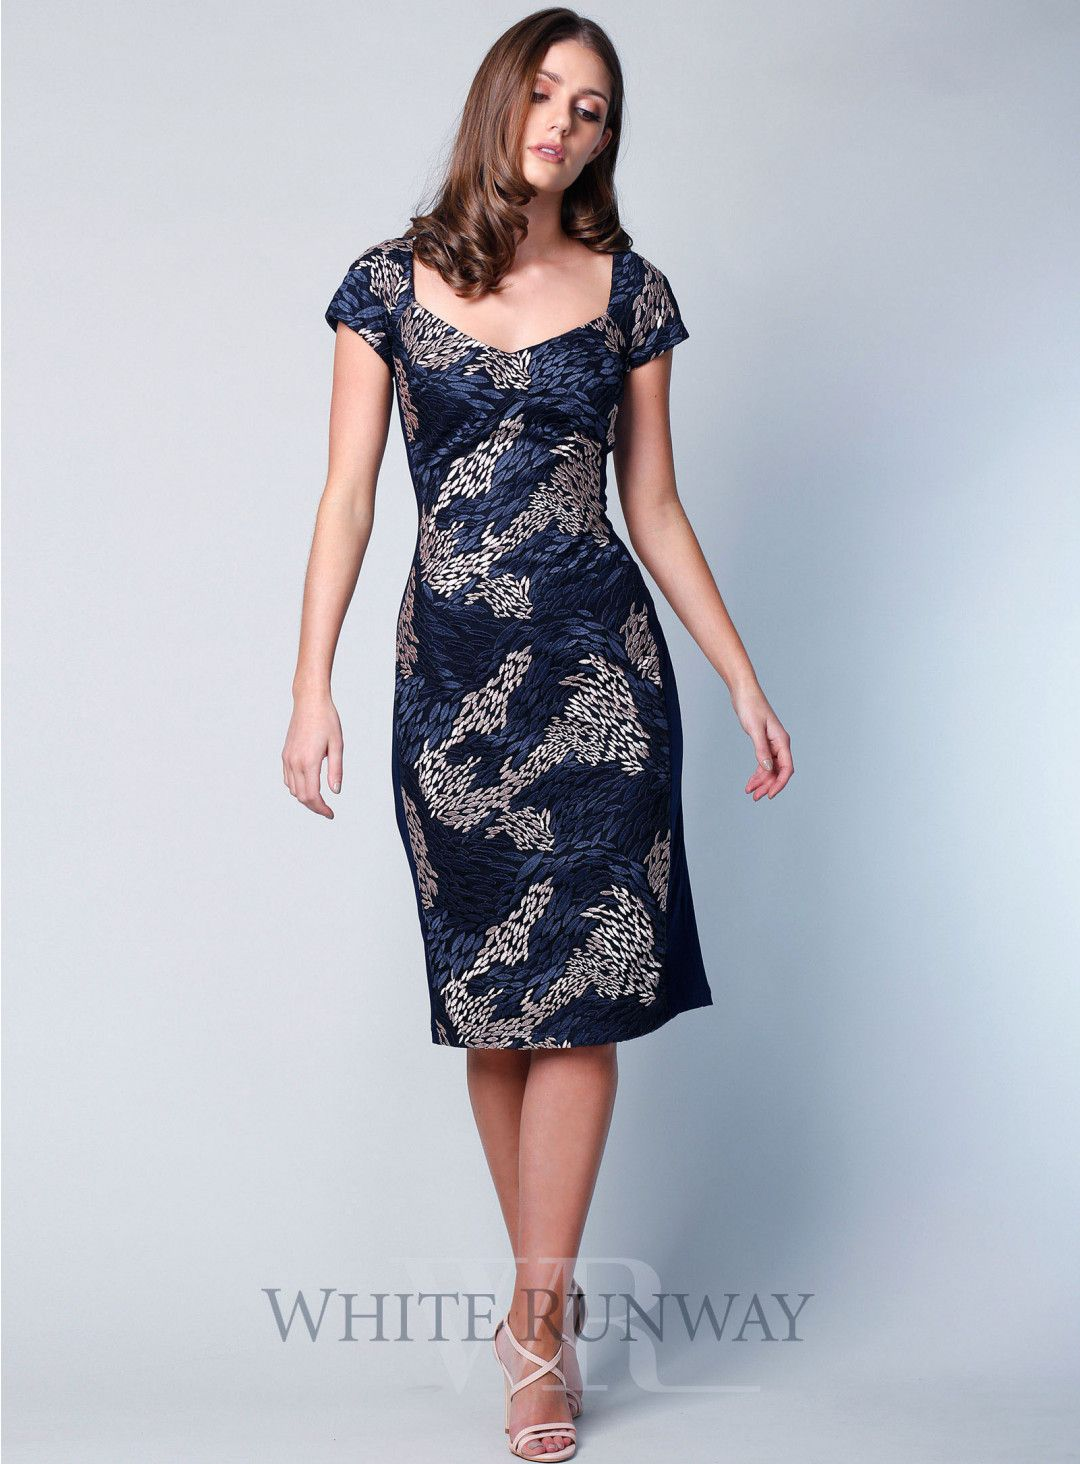 Victoria dress a lovely midi length dress by jesse harper a soft v